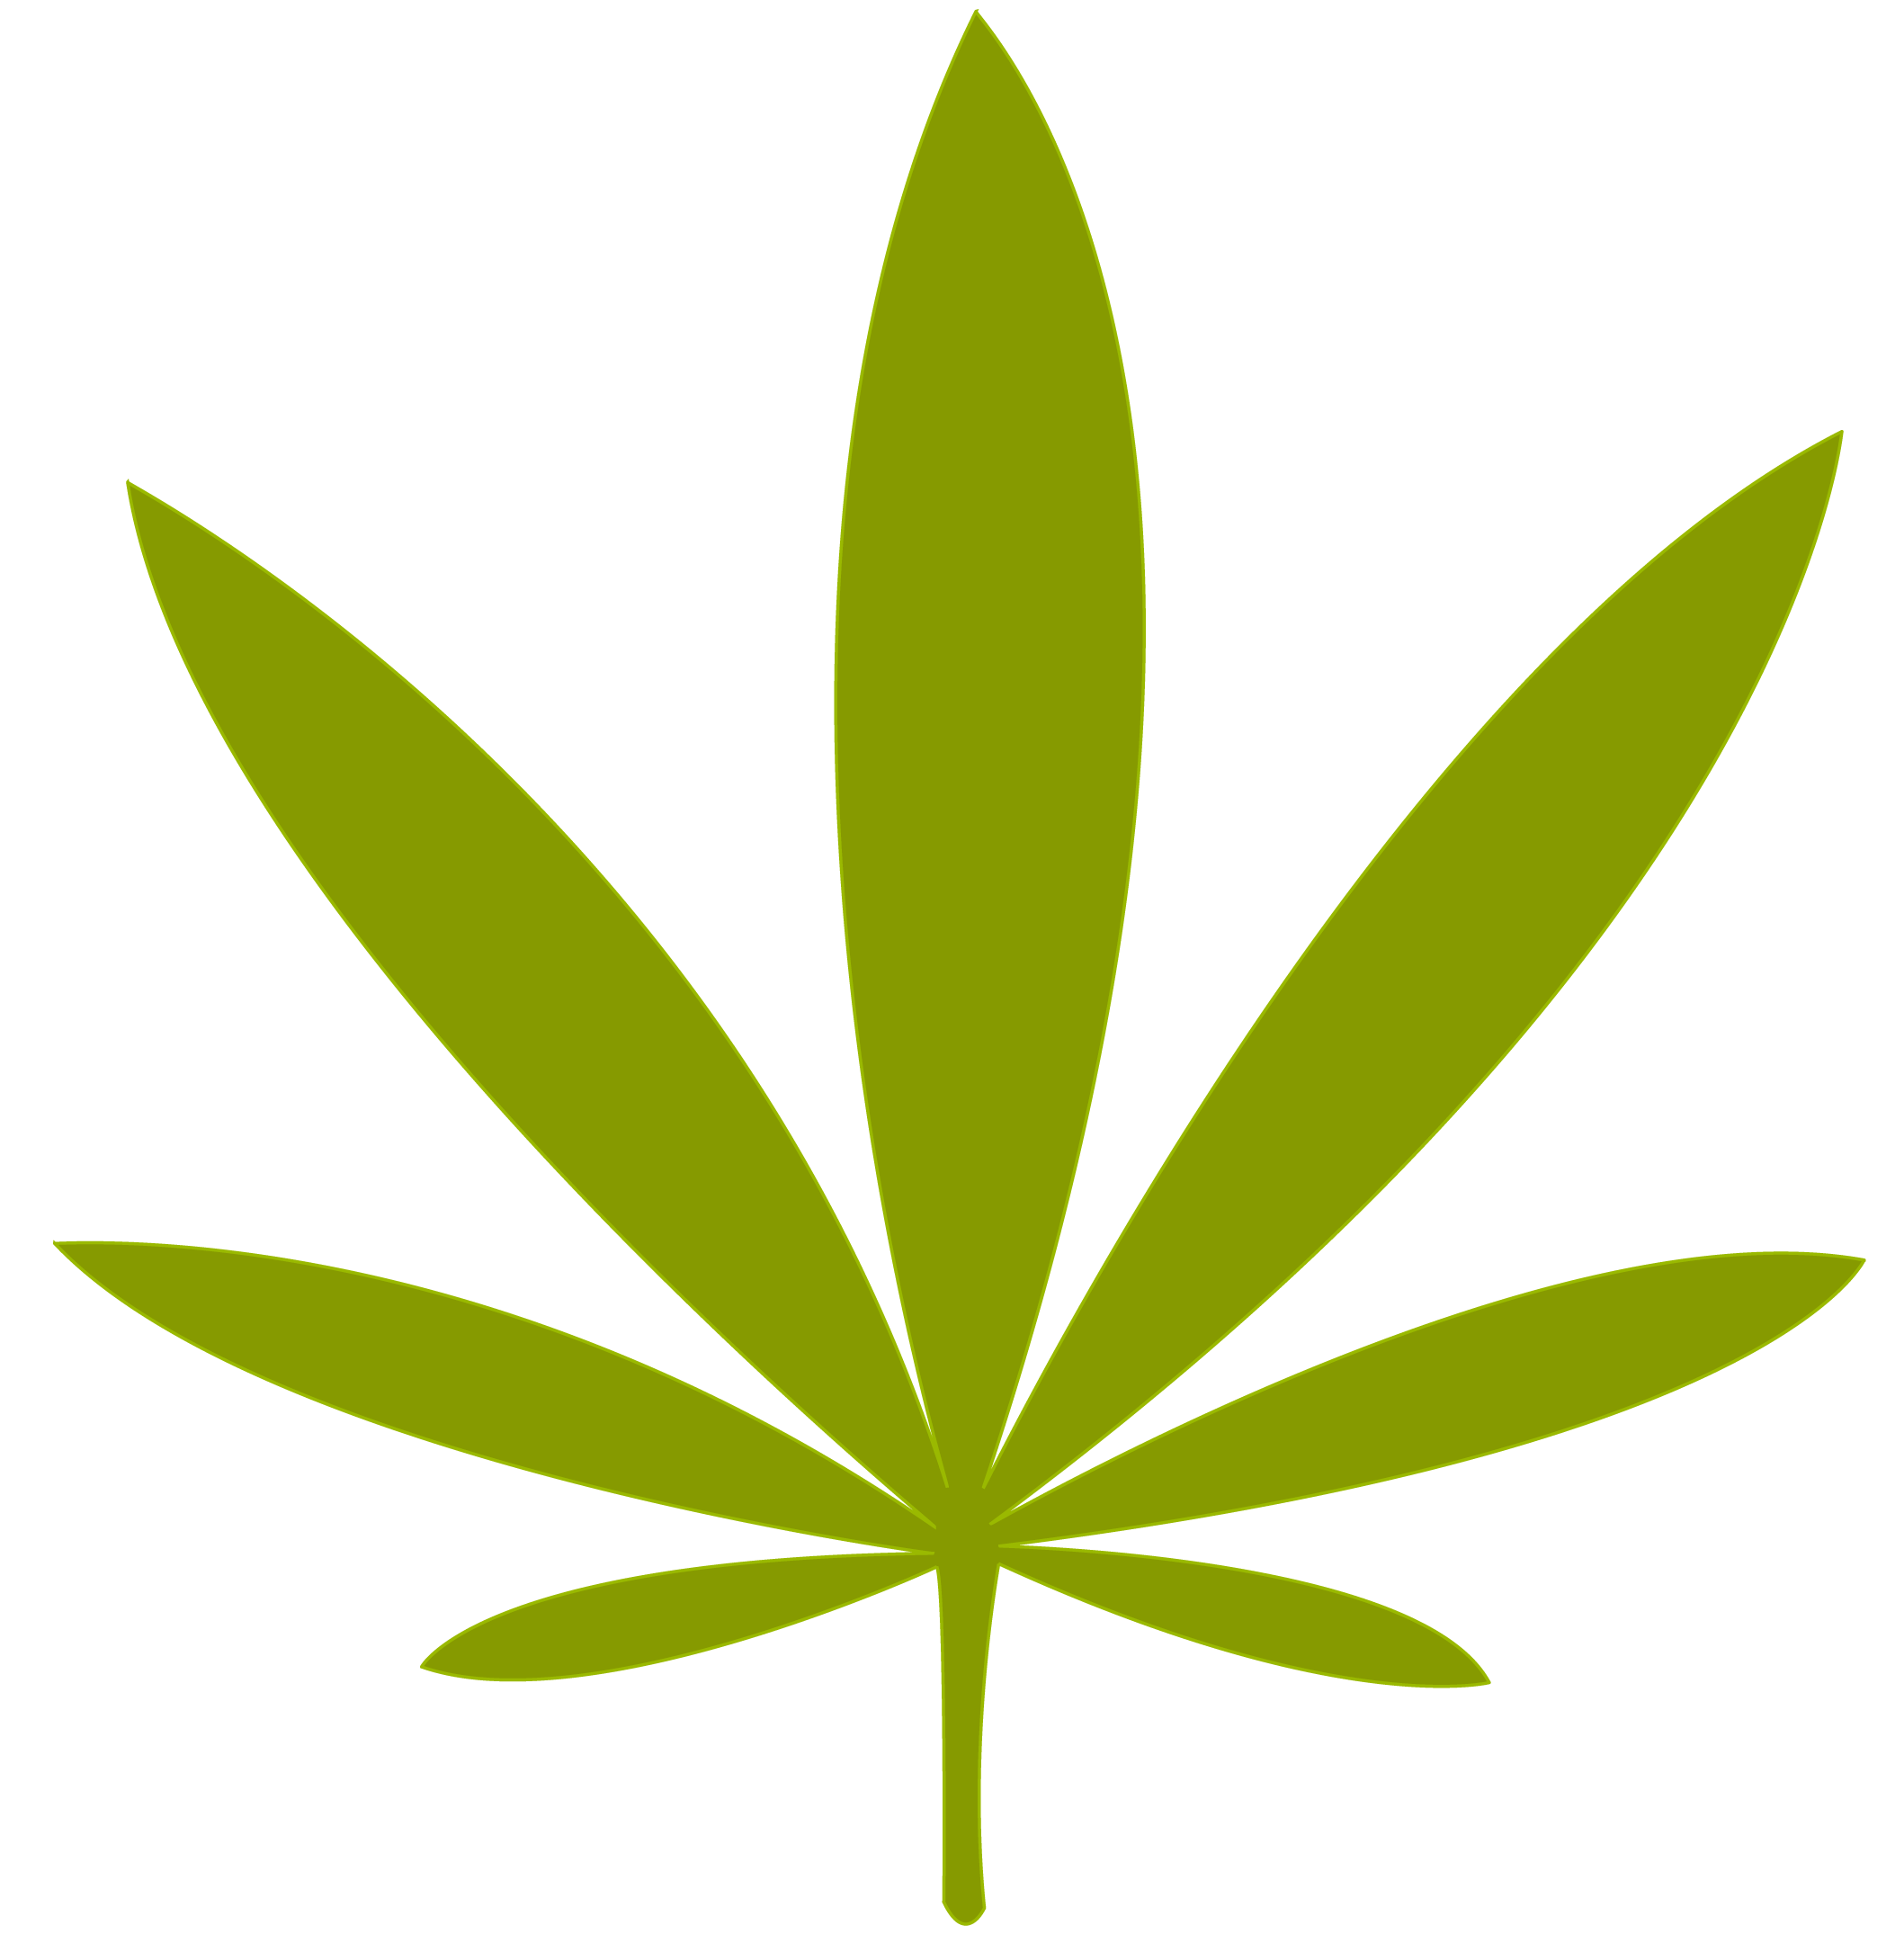 Weed leaf png file. Marijuana clipart black and white